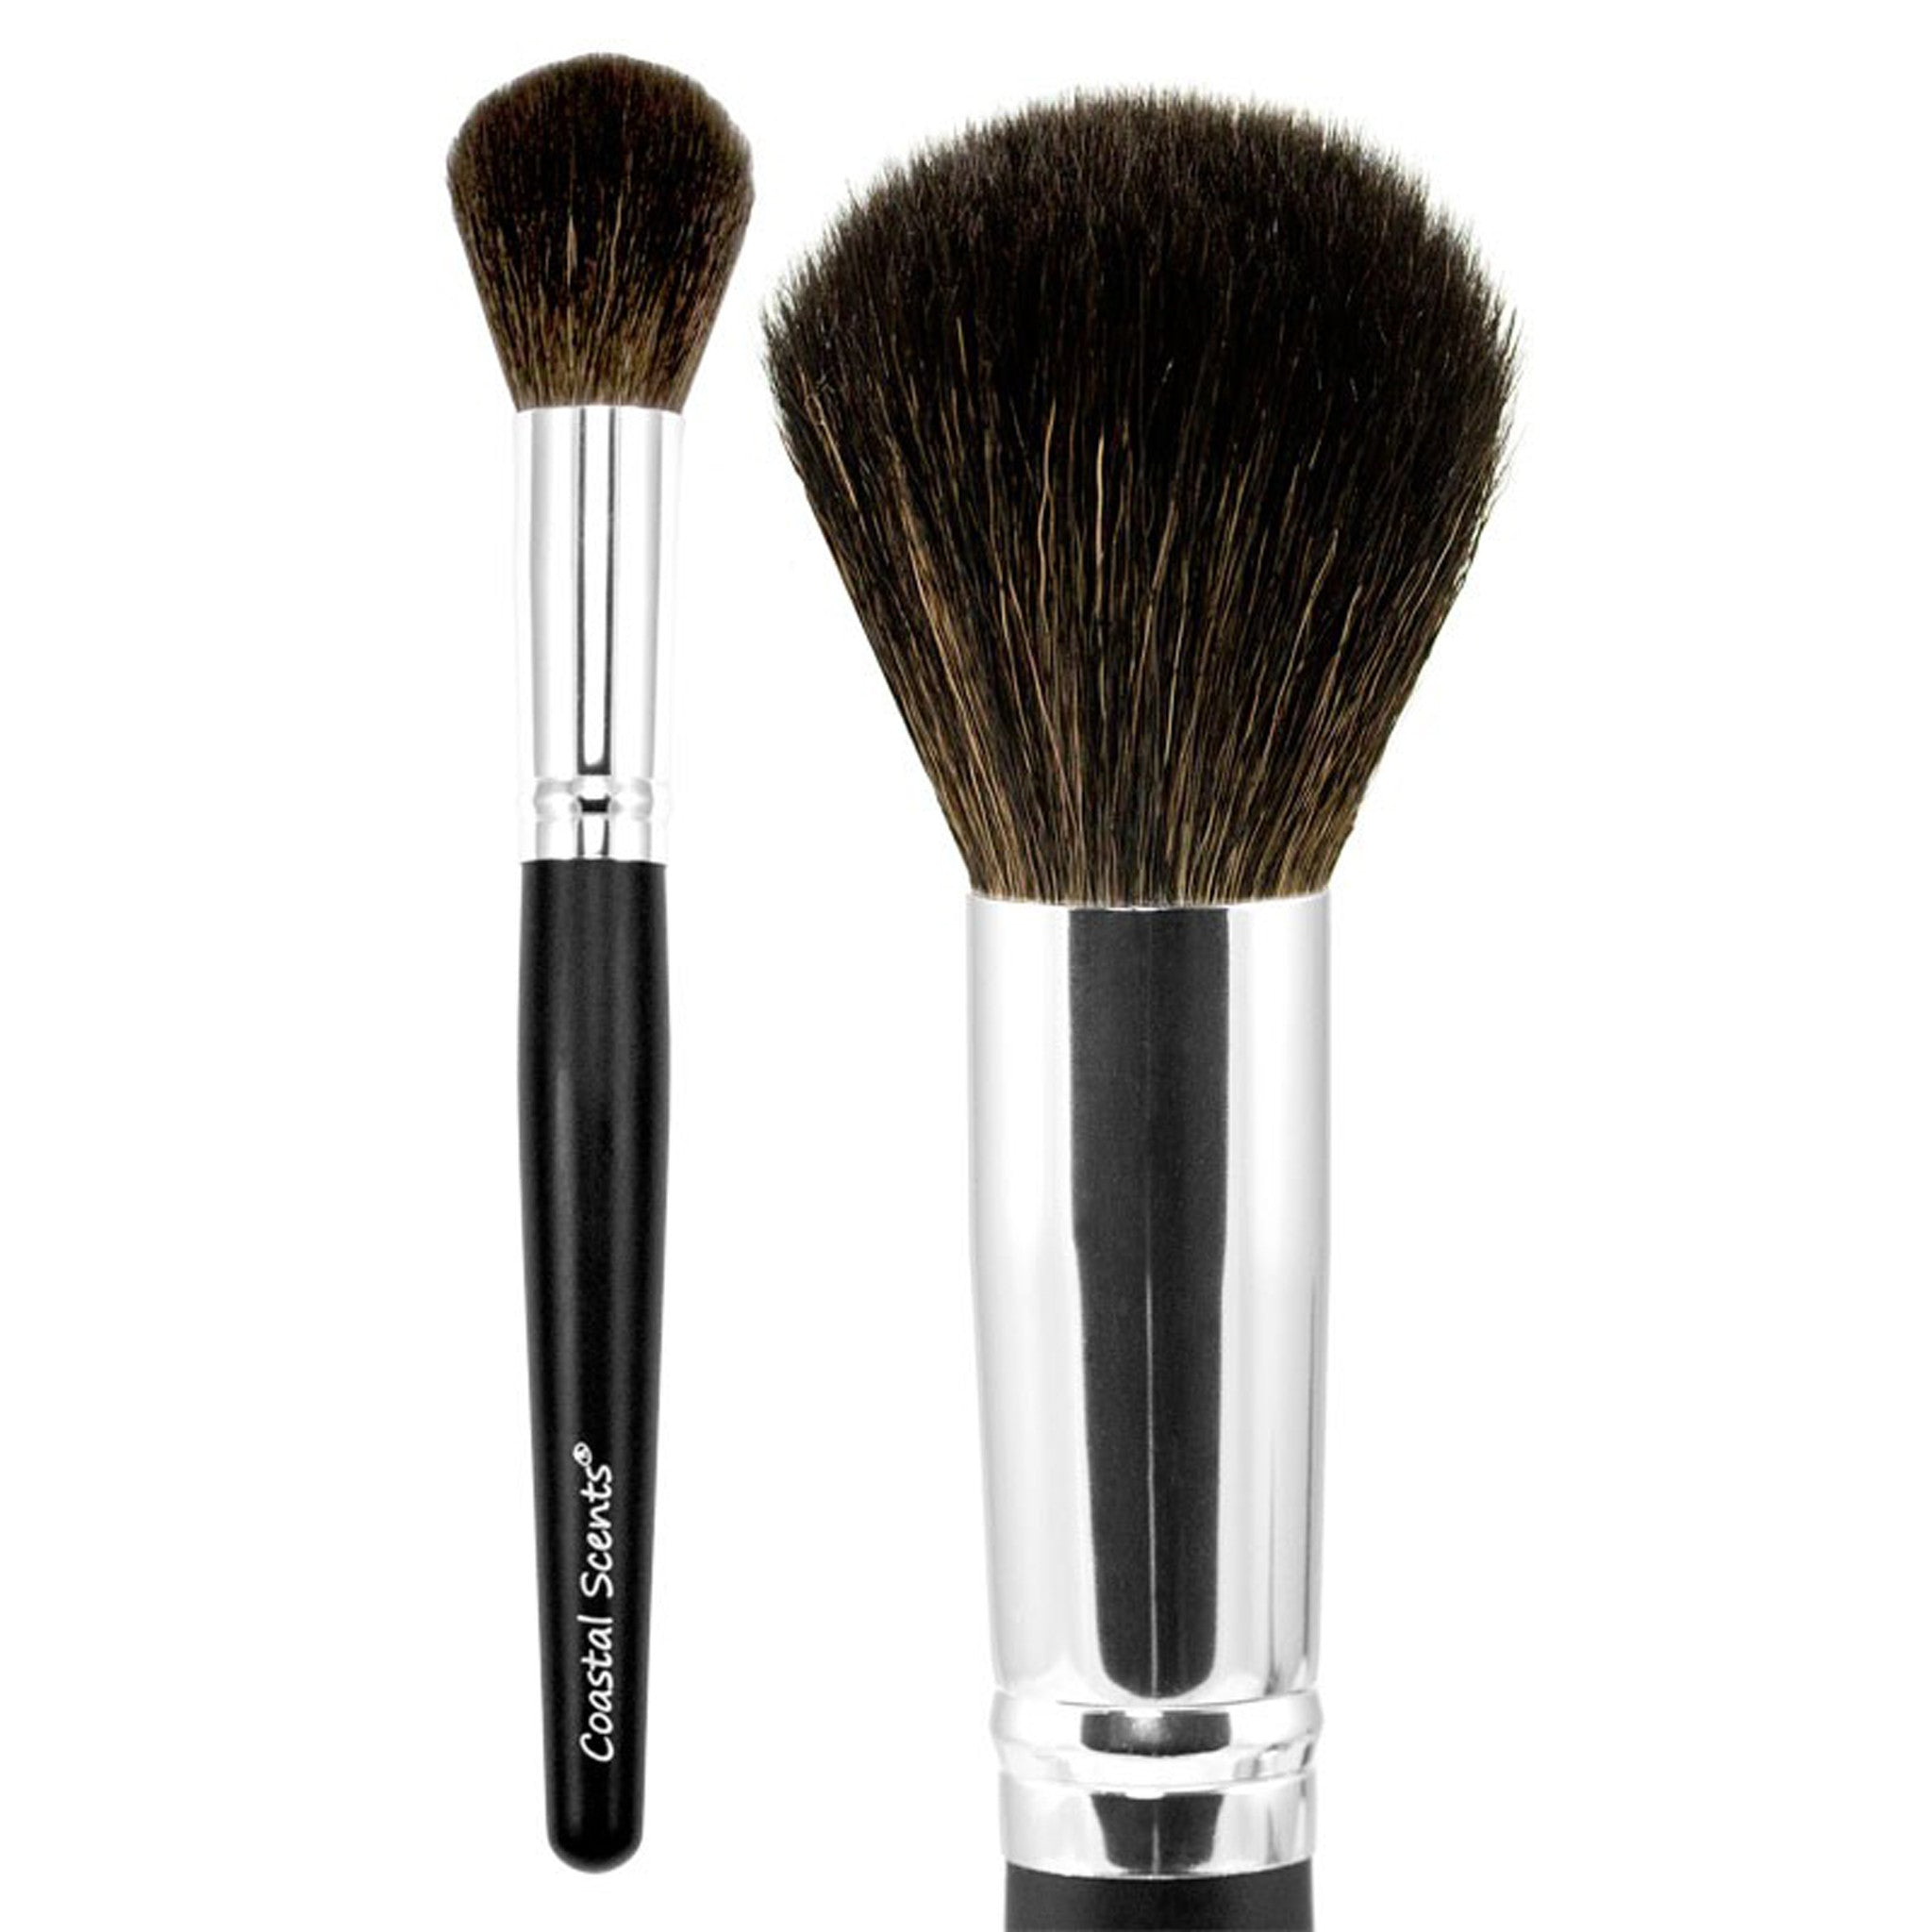 coastal scents brushes. classic large powder brush natural coastal scents brushes